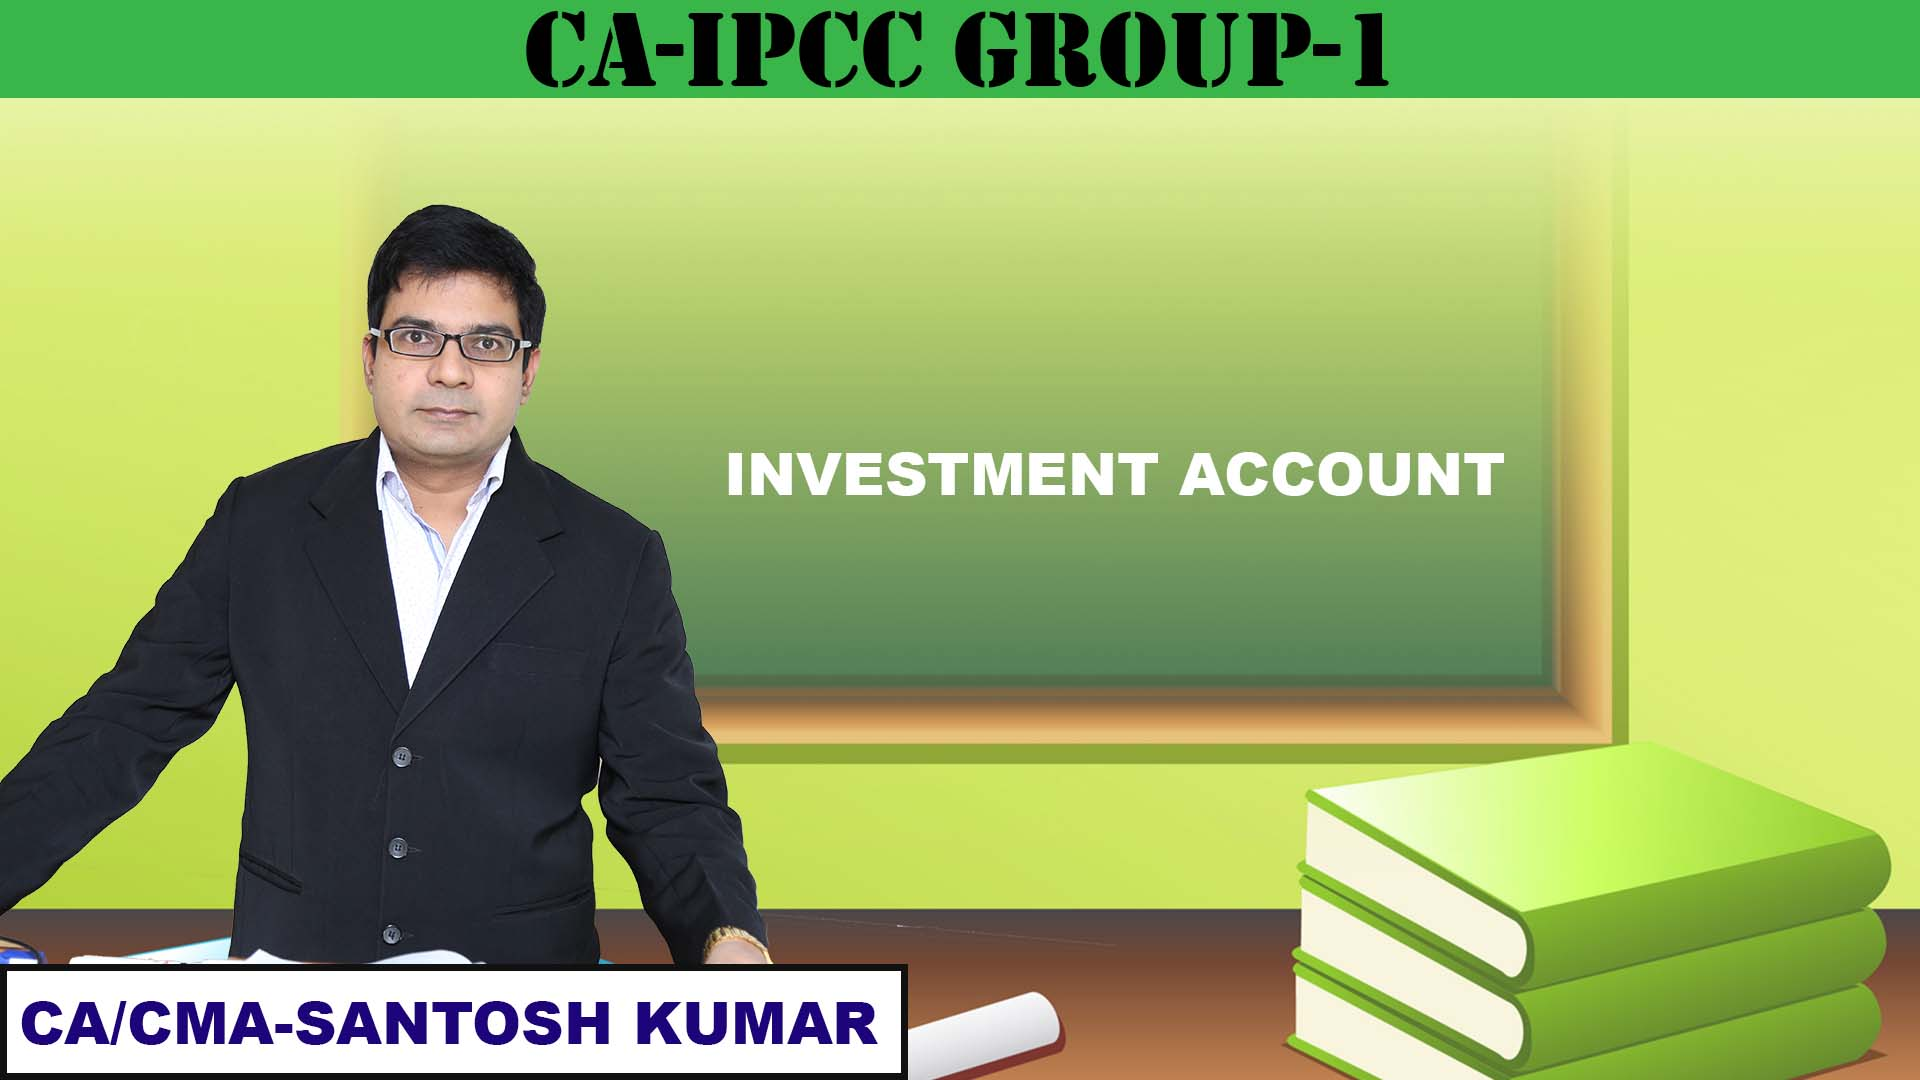 INVESTMENT ACCOUNT